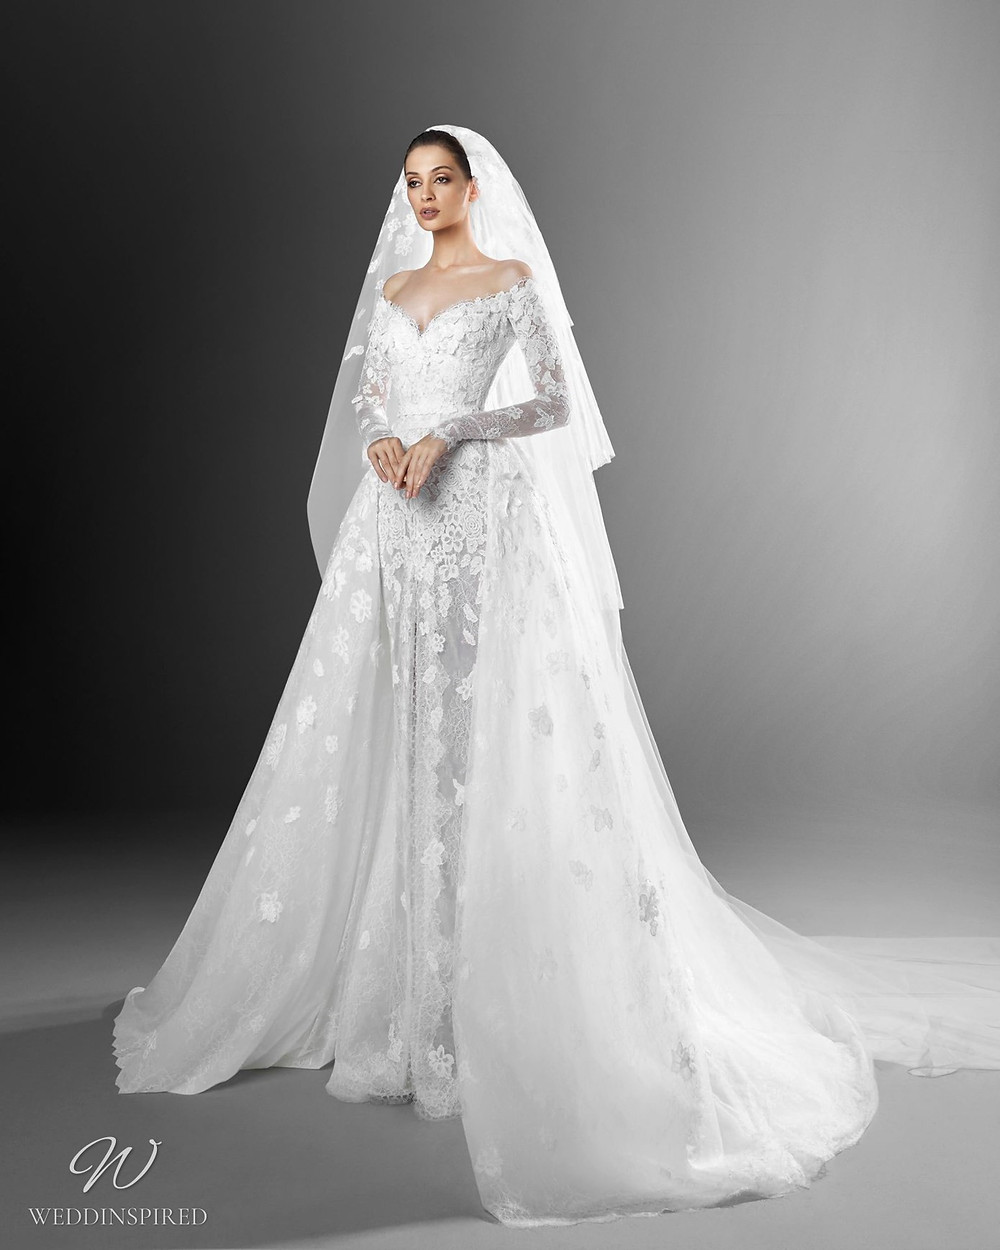 A Zuhair Murad mermaid off the shoulder wedding dress with lace, long sleeves, a detachable skirt and a veil